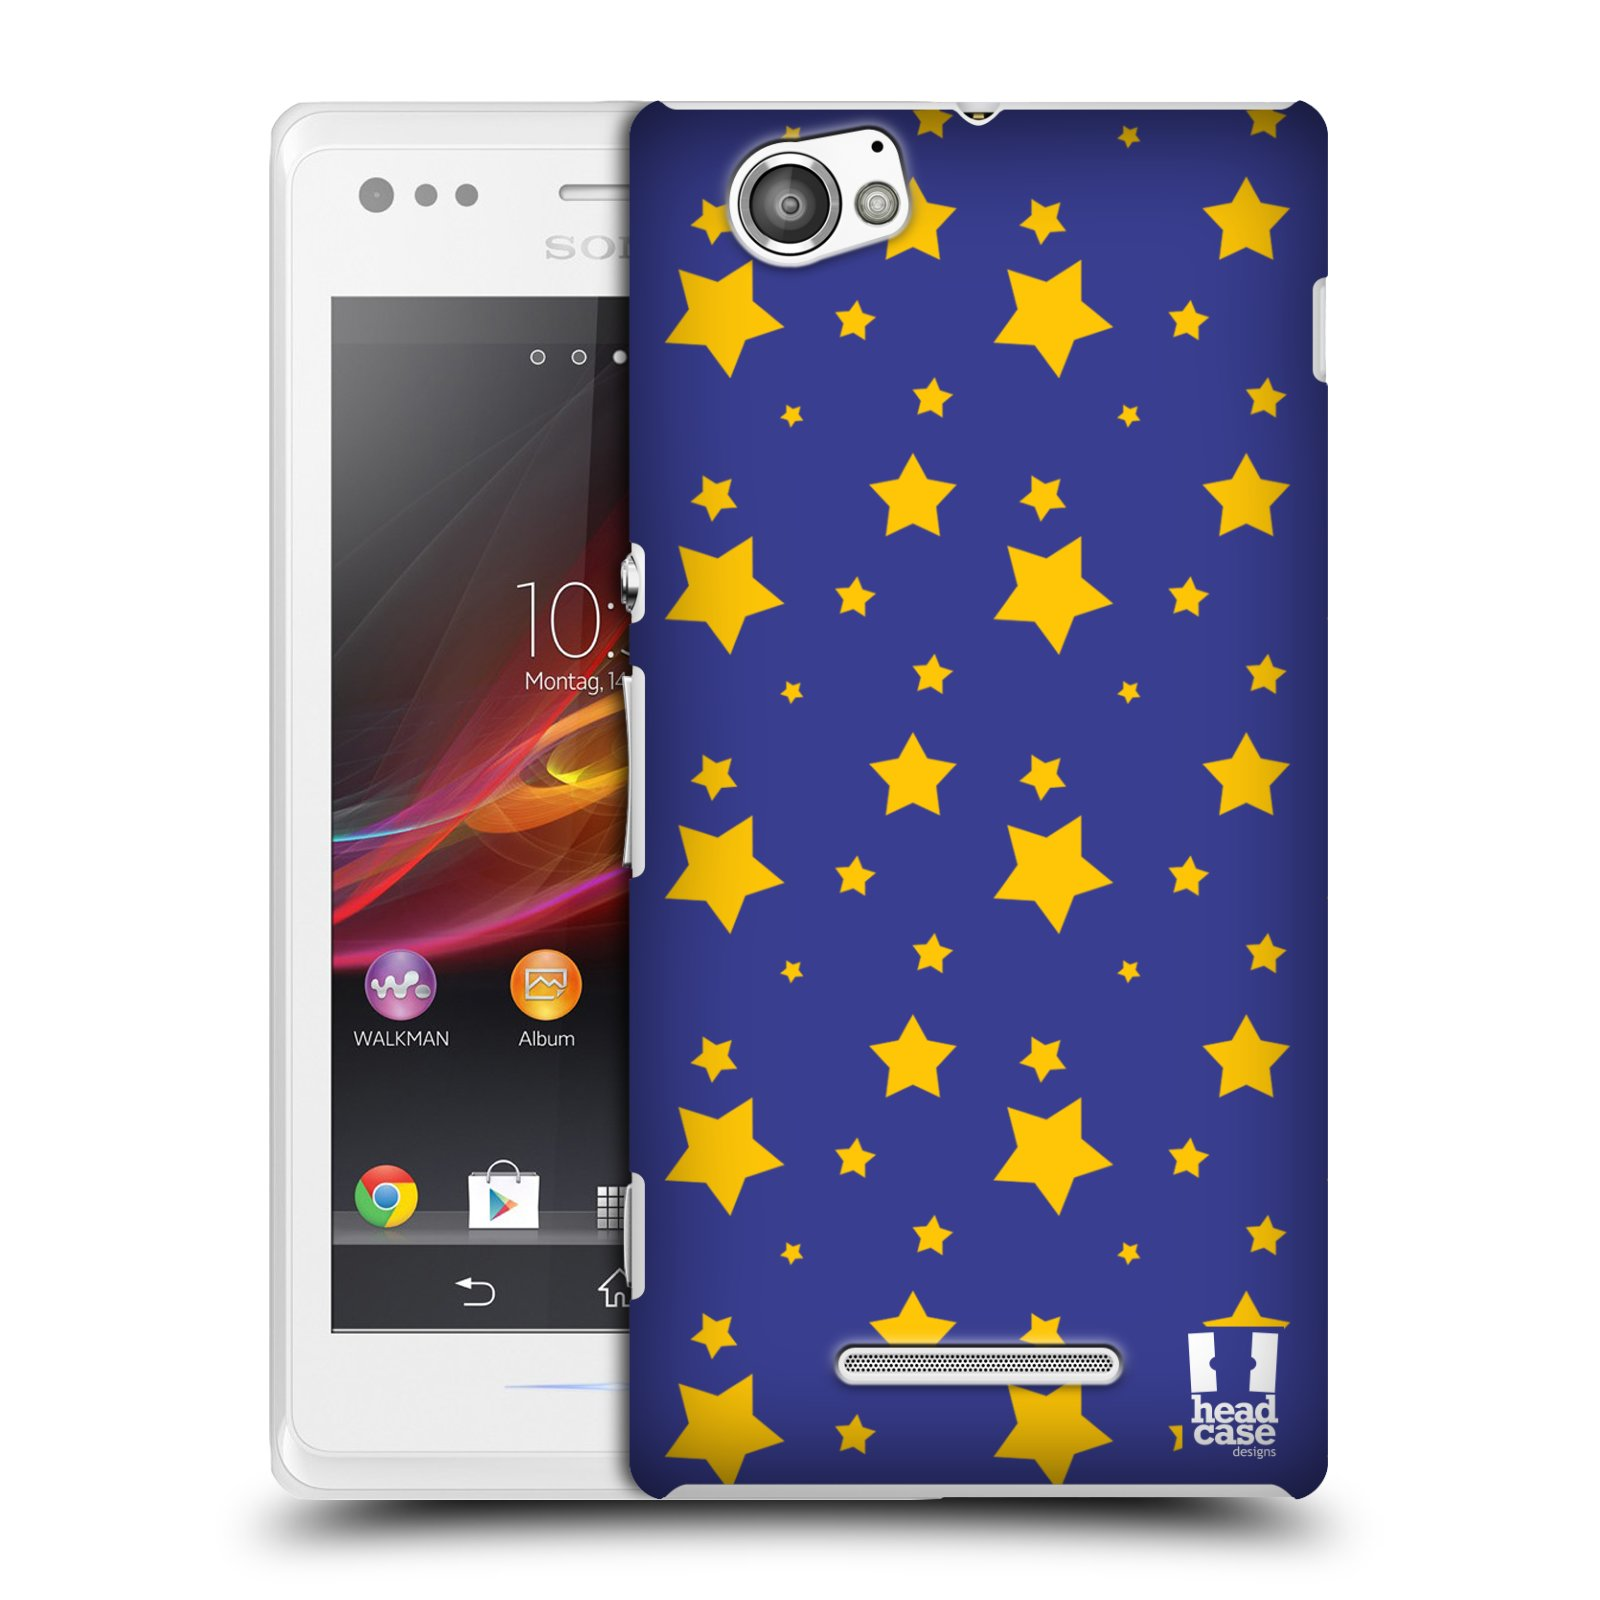 HEAD CASE DESIGNS STAR PATTERN CASE COVER FOR SONY XPERIA M C1905 C1904